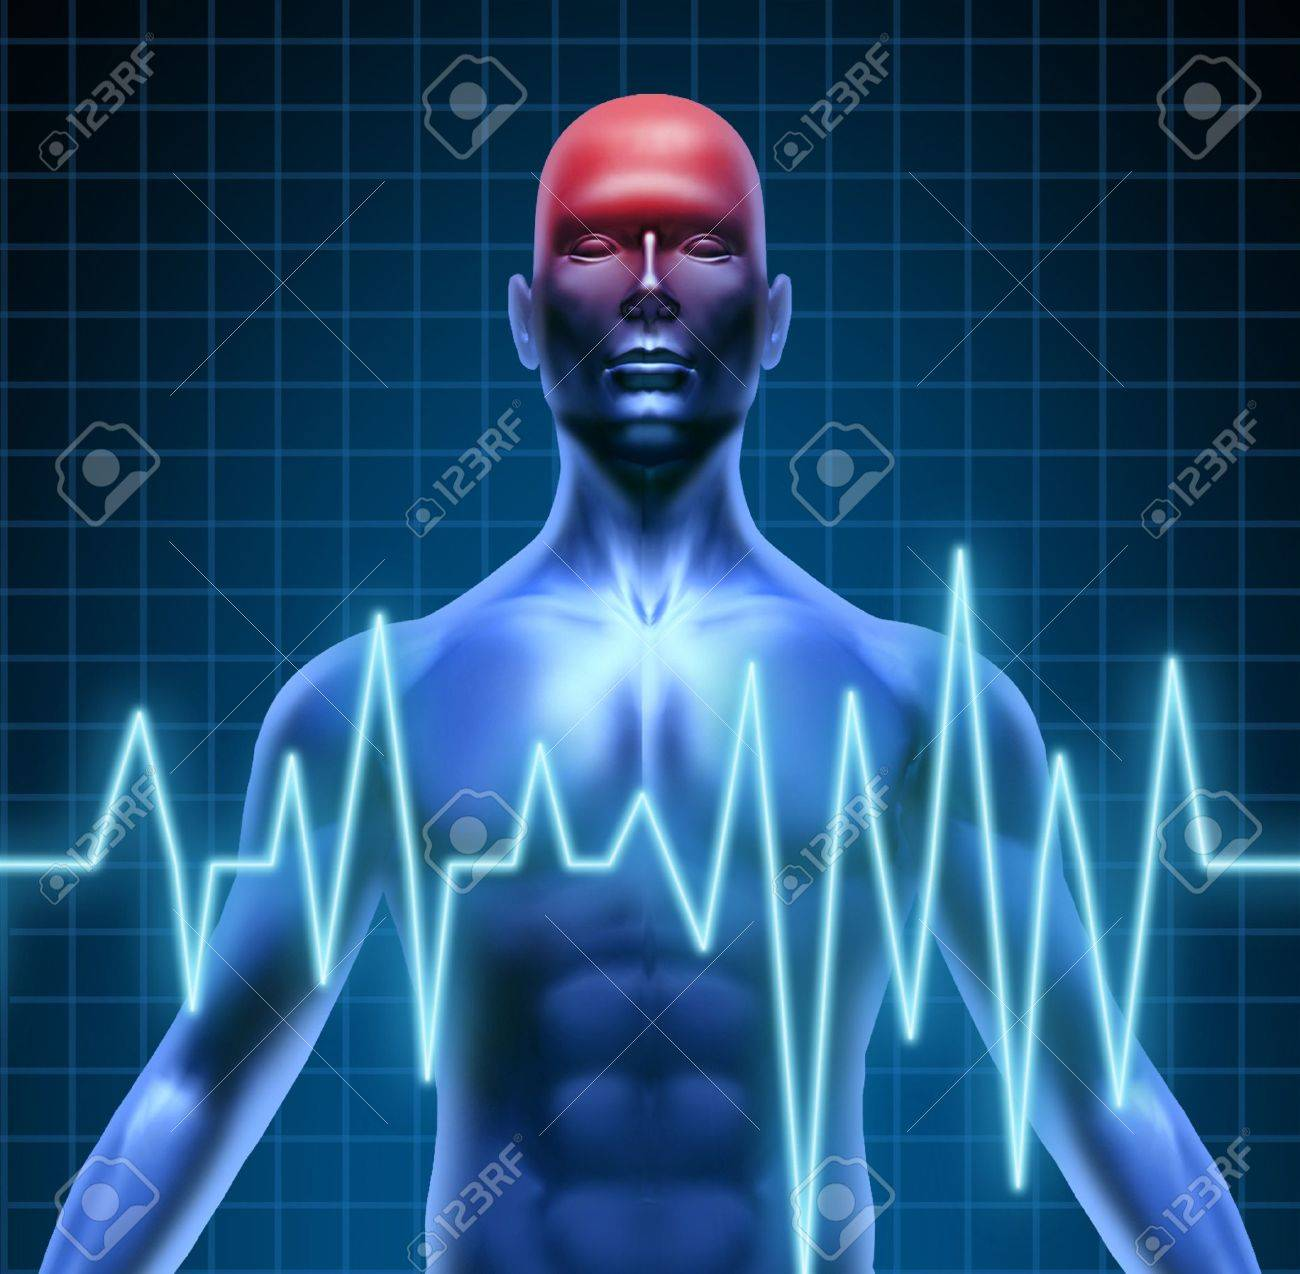 Human body with a head ache of the brain with a migrain and stroke accident caused by poor circulation representing neurology with heart blood health problems. Stock Photo - 10455173